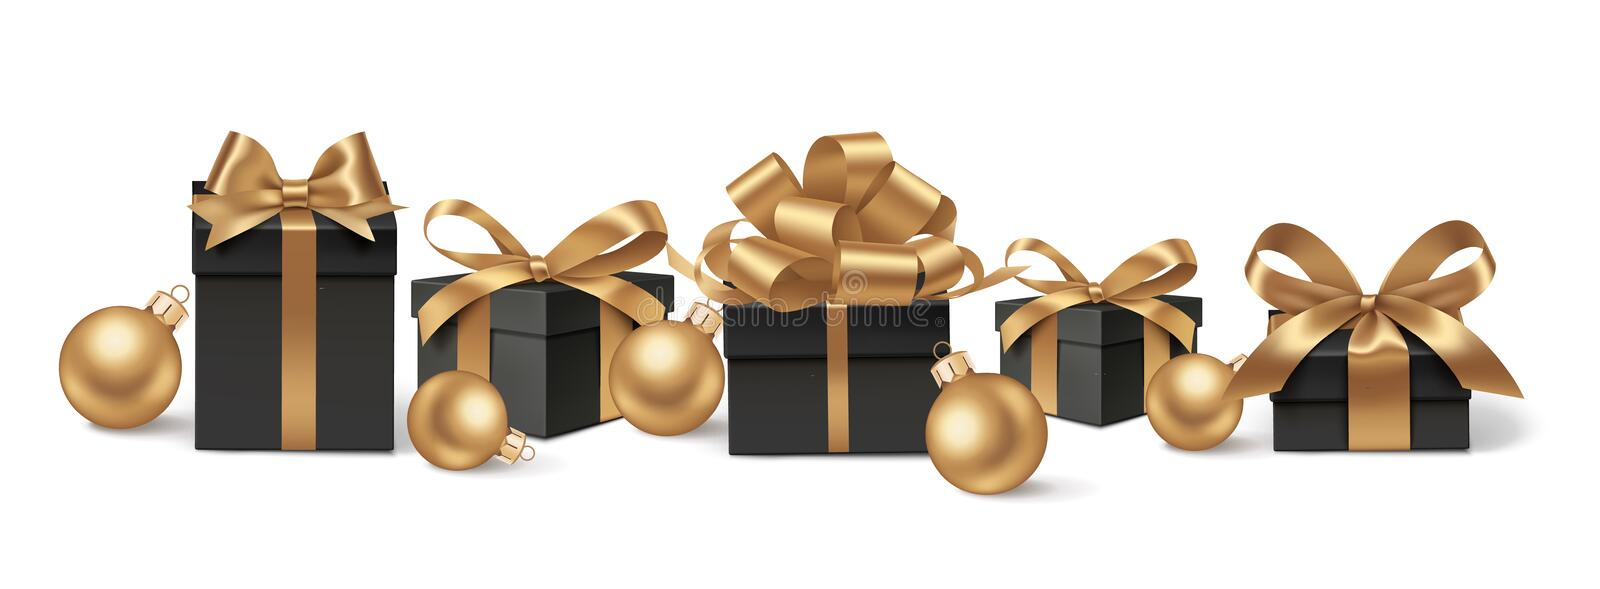 DEcorative black gift boxes and golden balls. Set of decorative black gift boxes with golden bows and gold Christmas balls isolated on white for New Year Sale vector illustration